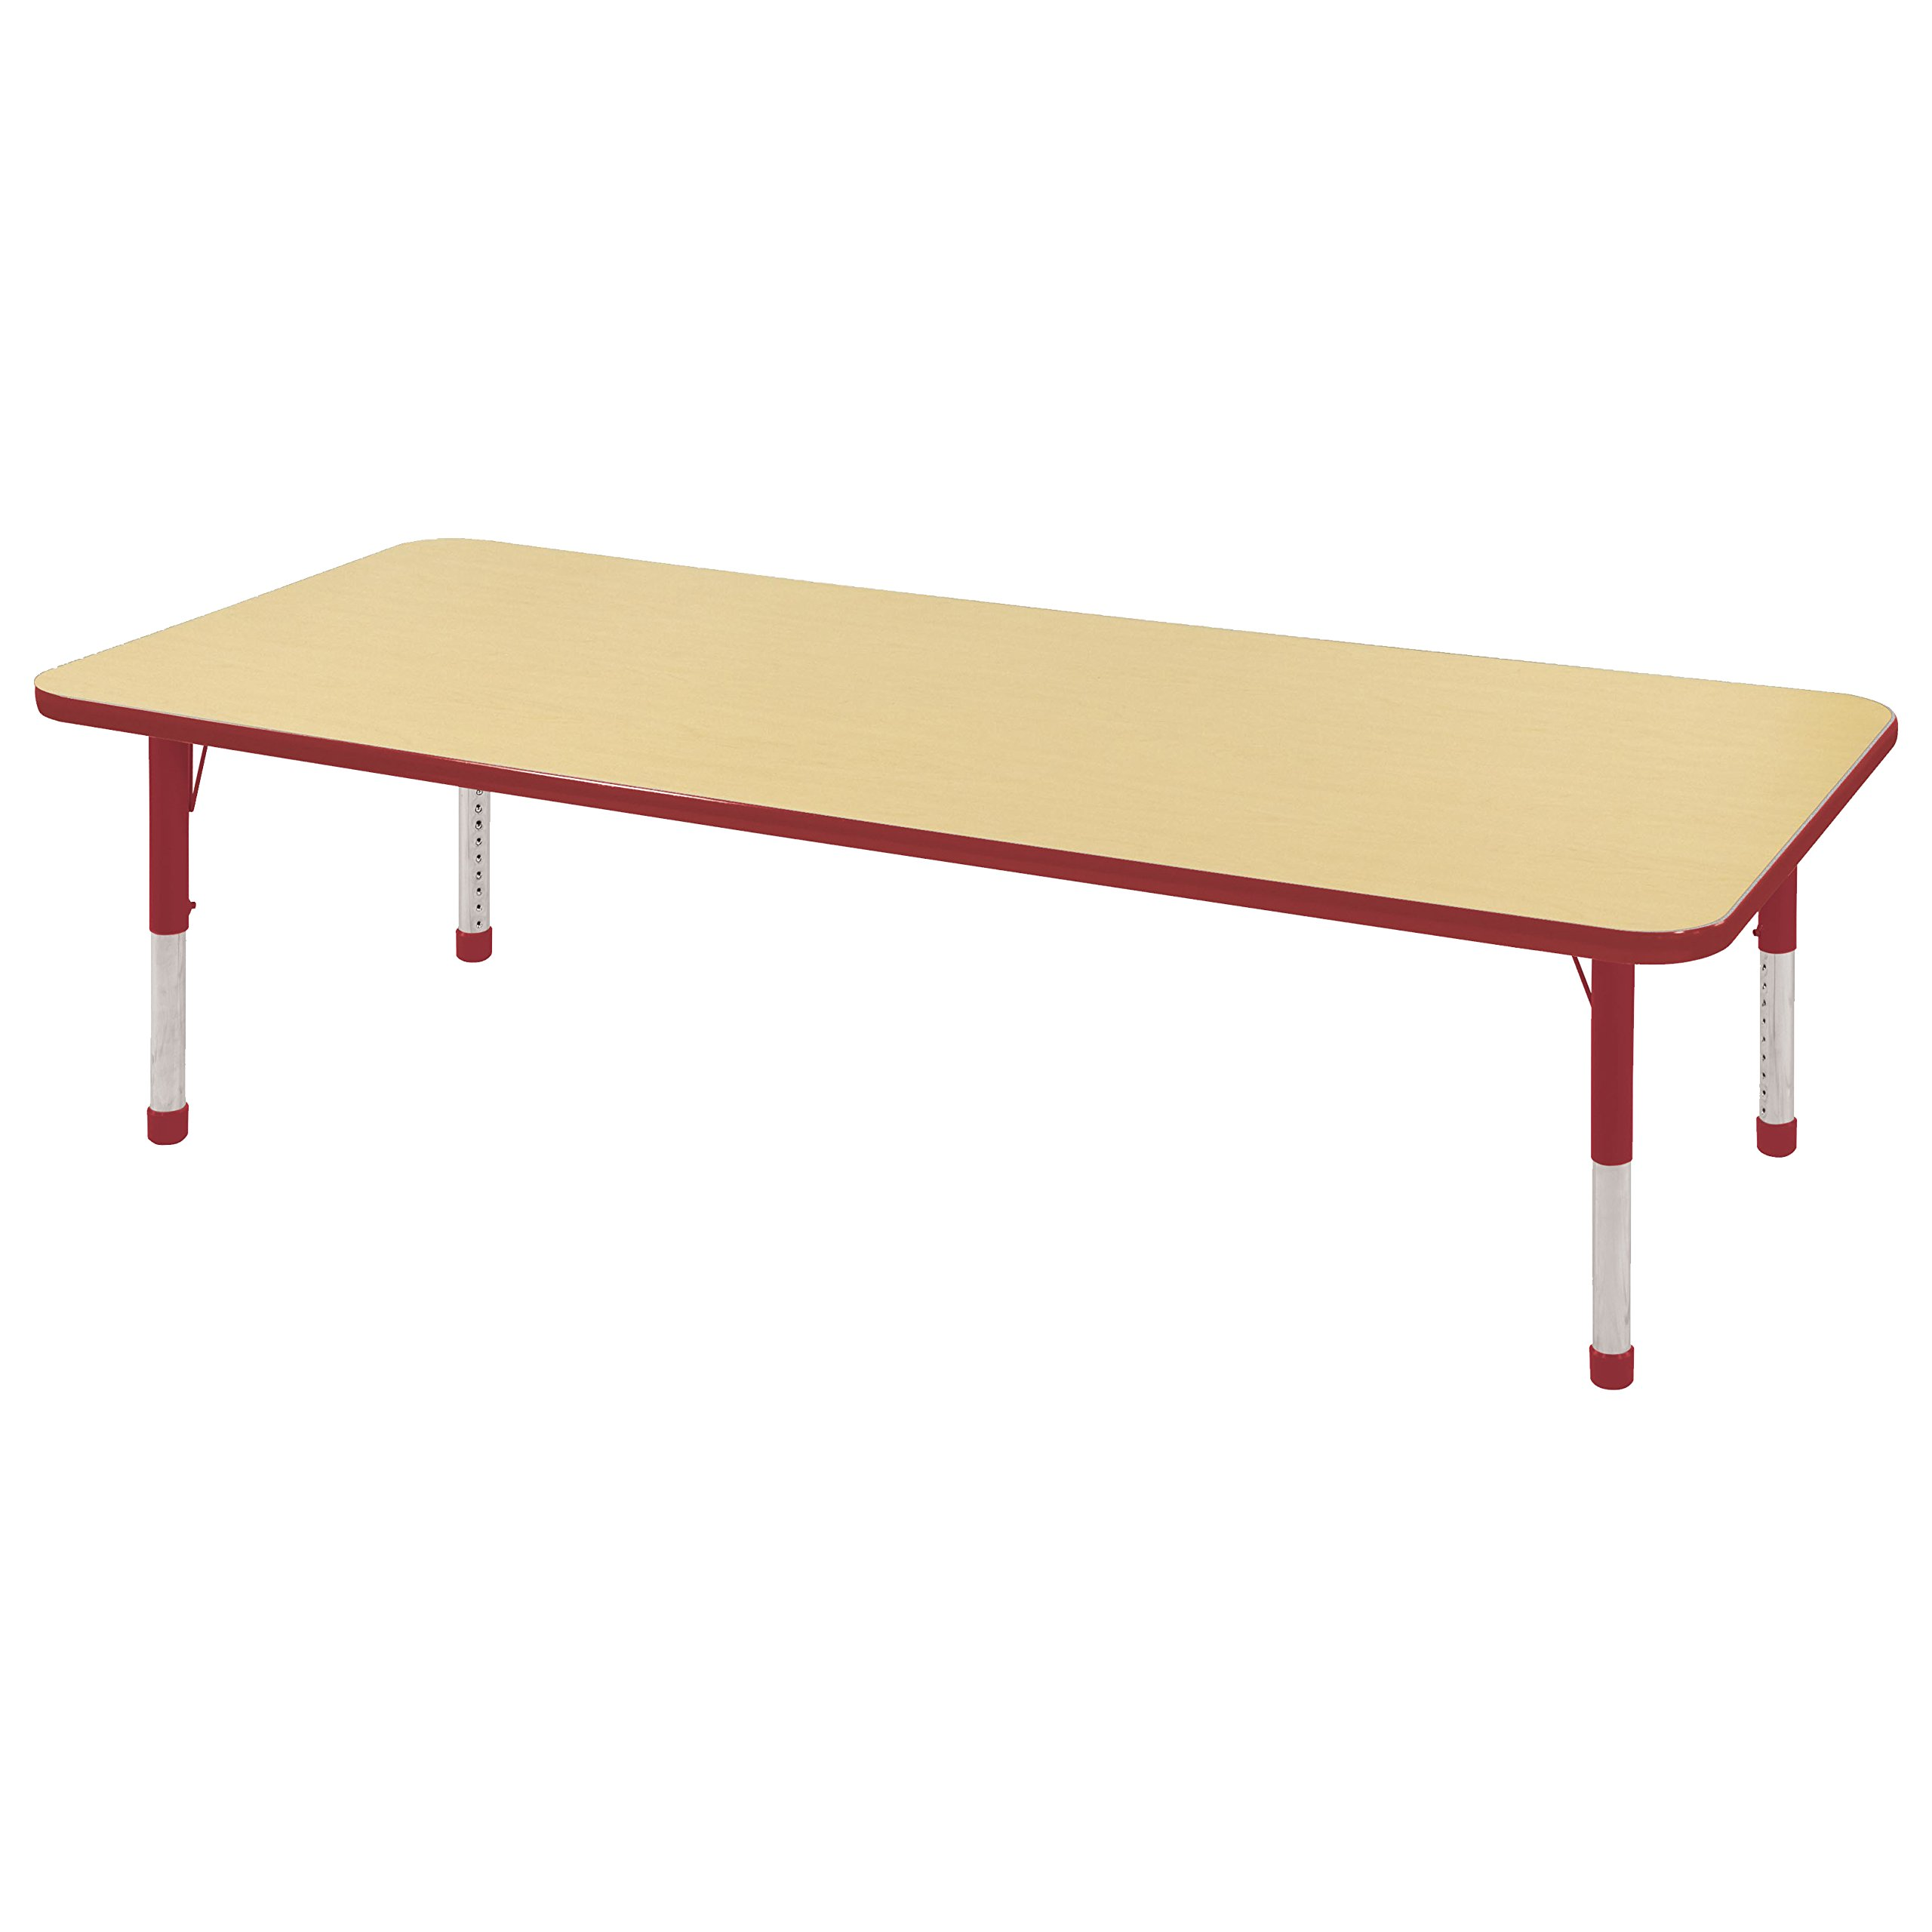 ECR4Kids T-Mold 24'' x 72'' Rectangular Activity School Table, Chunky Legs, Adjustable Height 15-24 inch (Maple/Red) by ECR4Kids